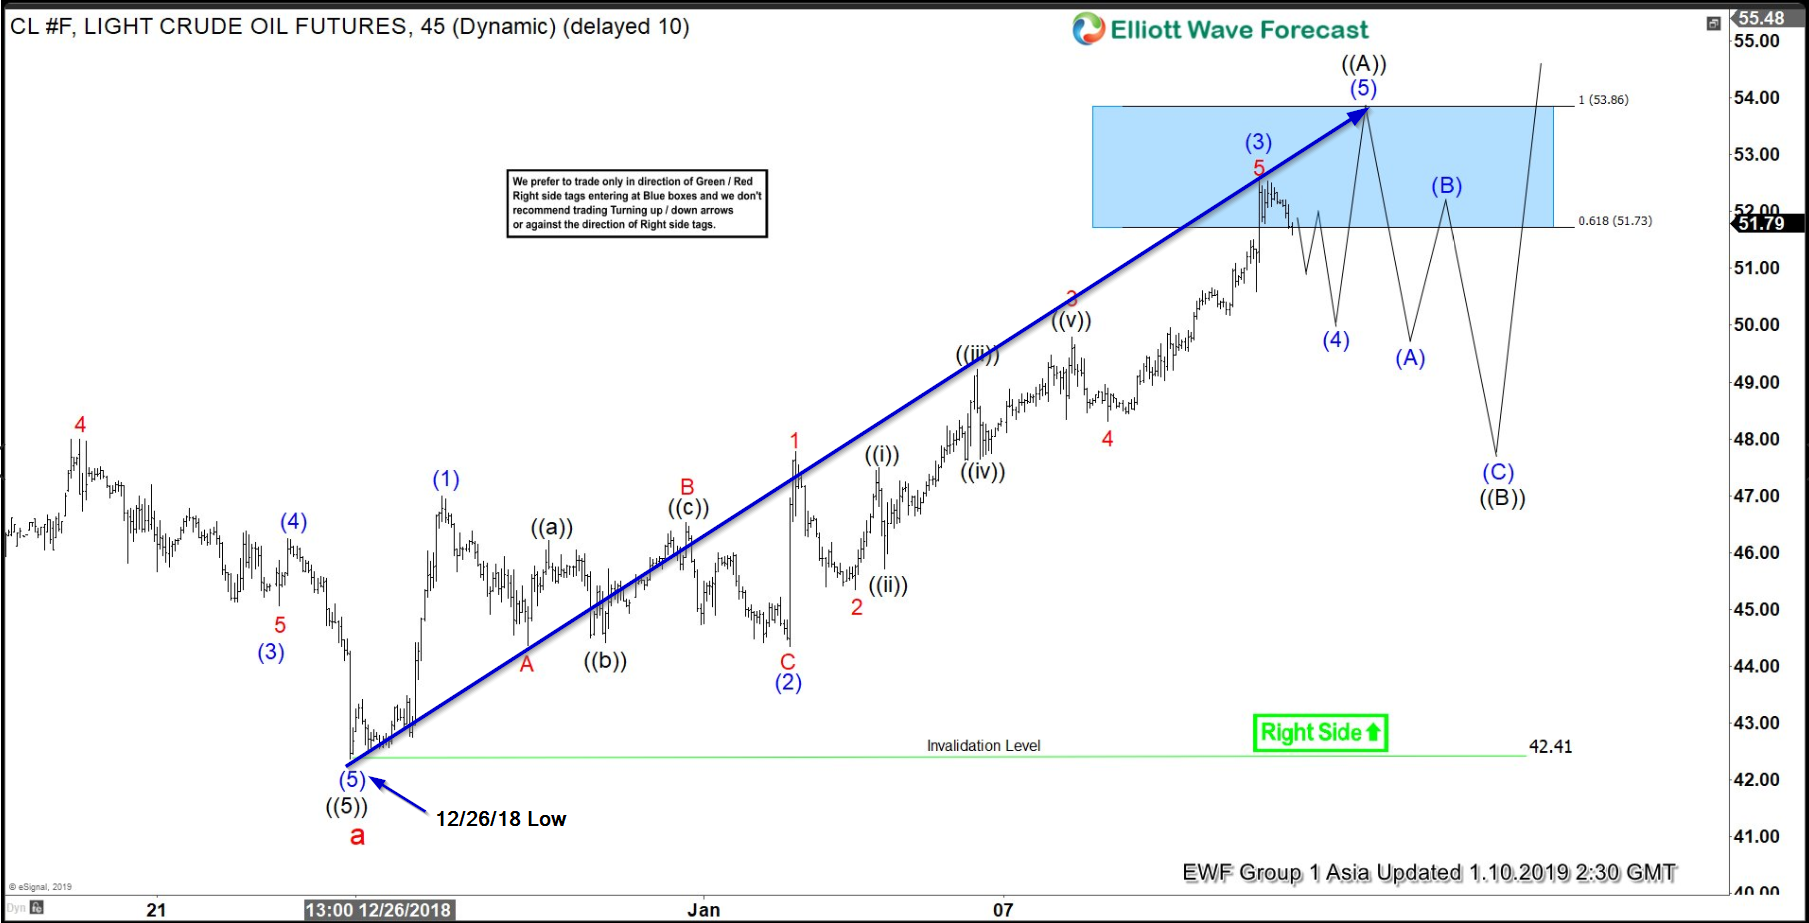 Elliott Wave Analysis: Further Strength Expected in Oil